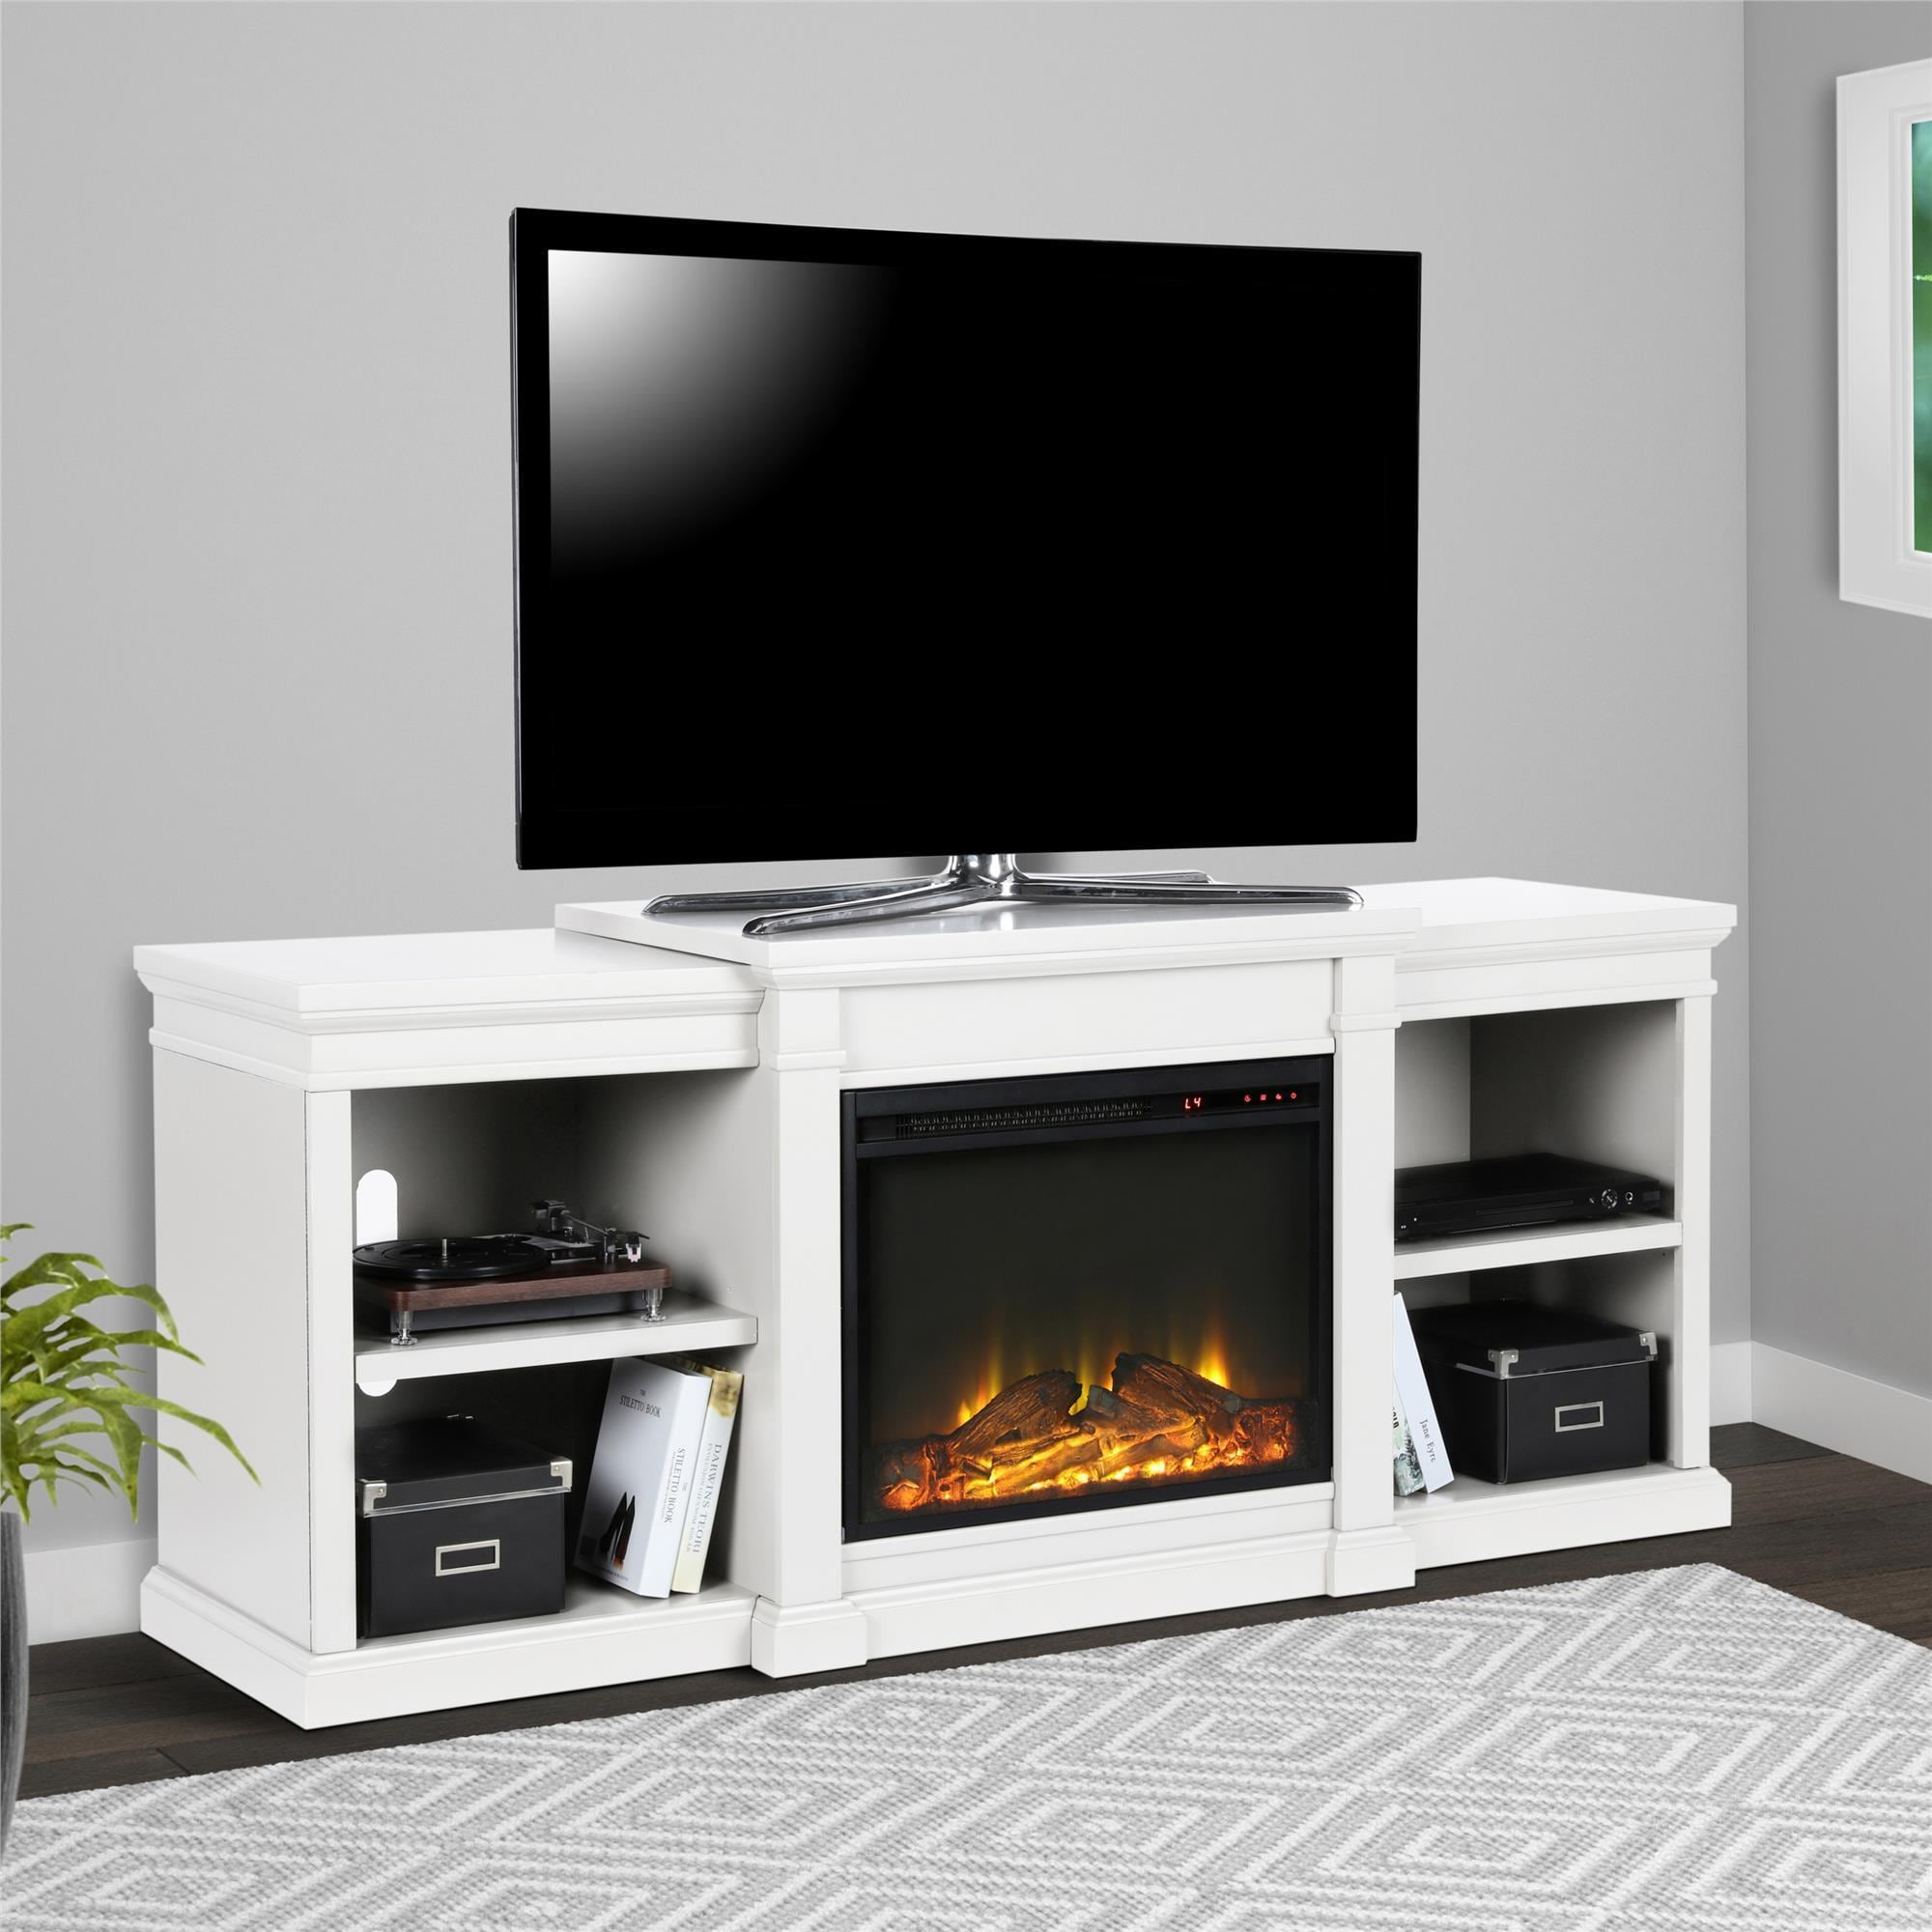 sale retailer 63a97 8a8eb Avenue Greene Anderson Electric Fireplace TV Stand for TVs up to 70 inches  wide